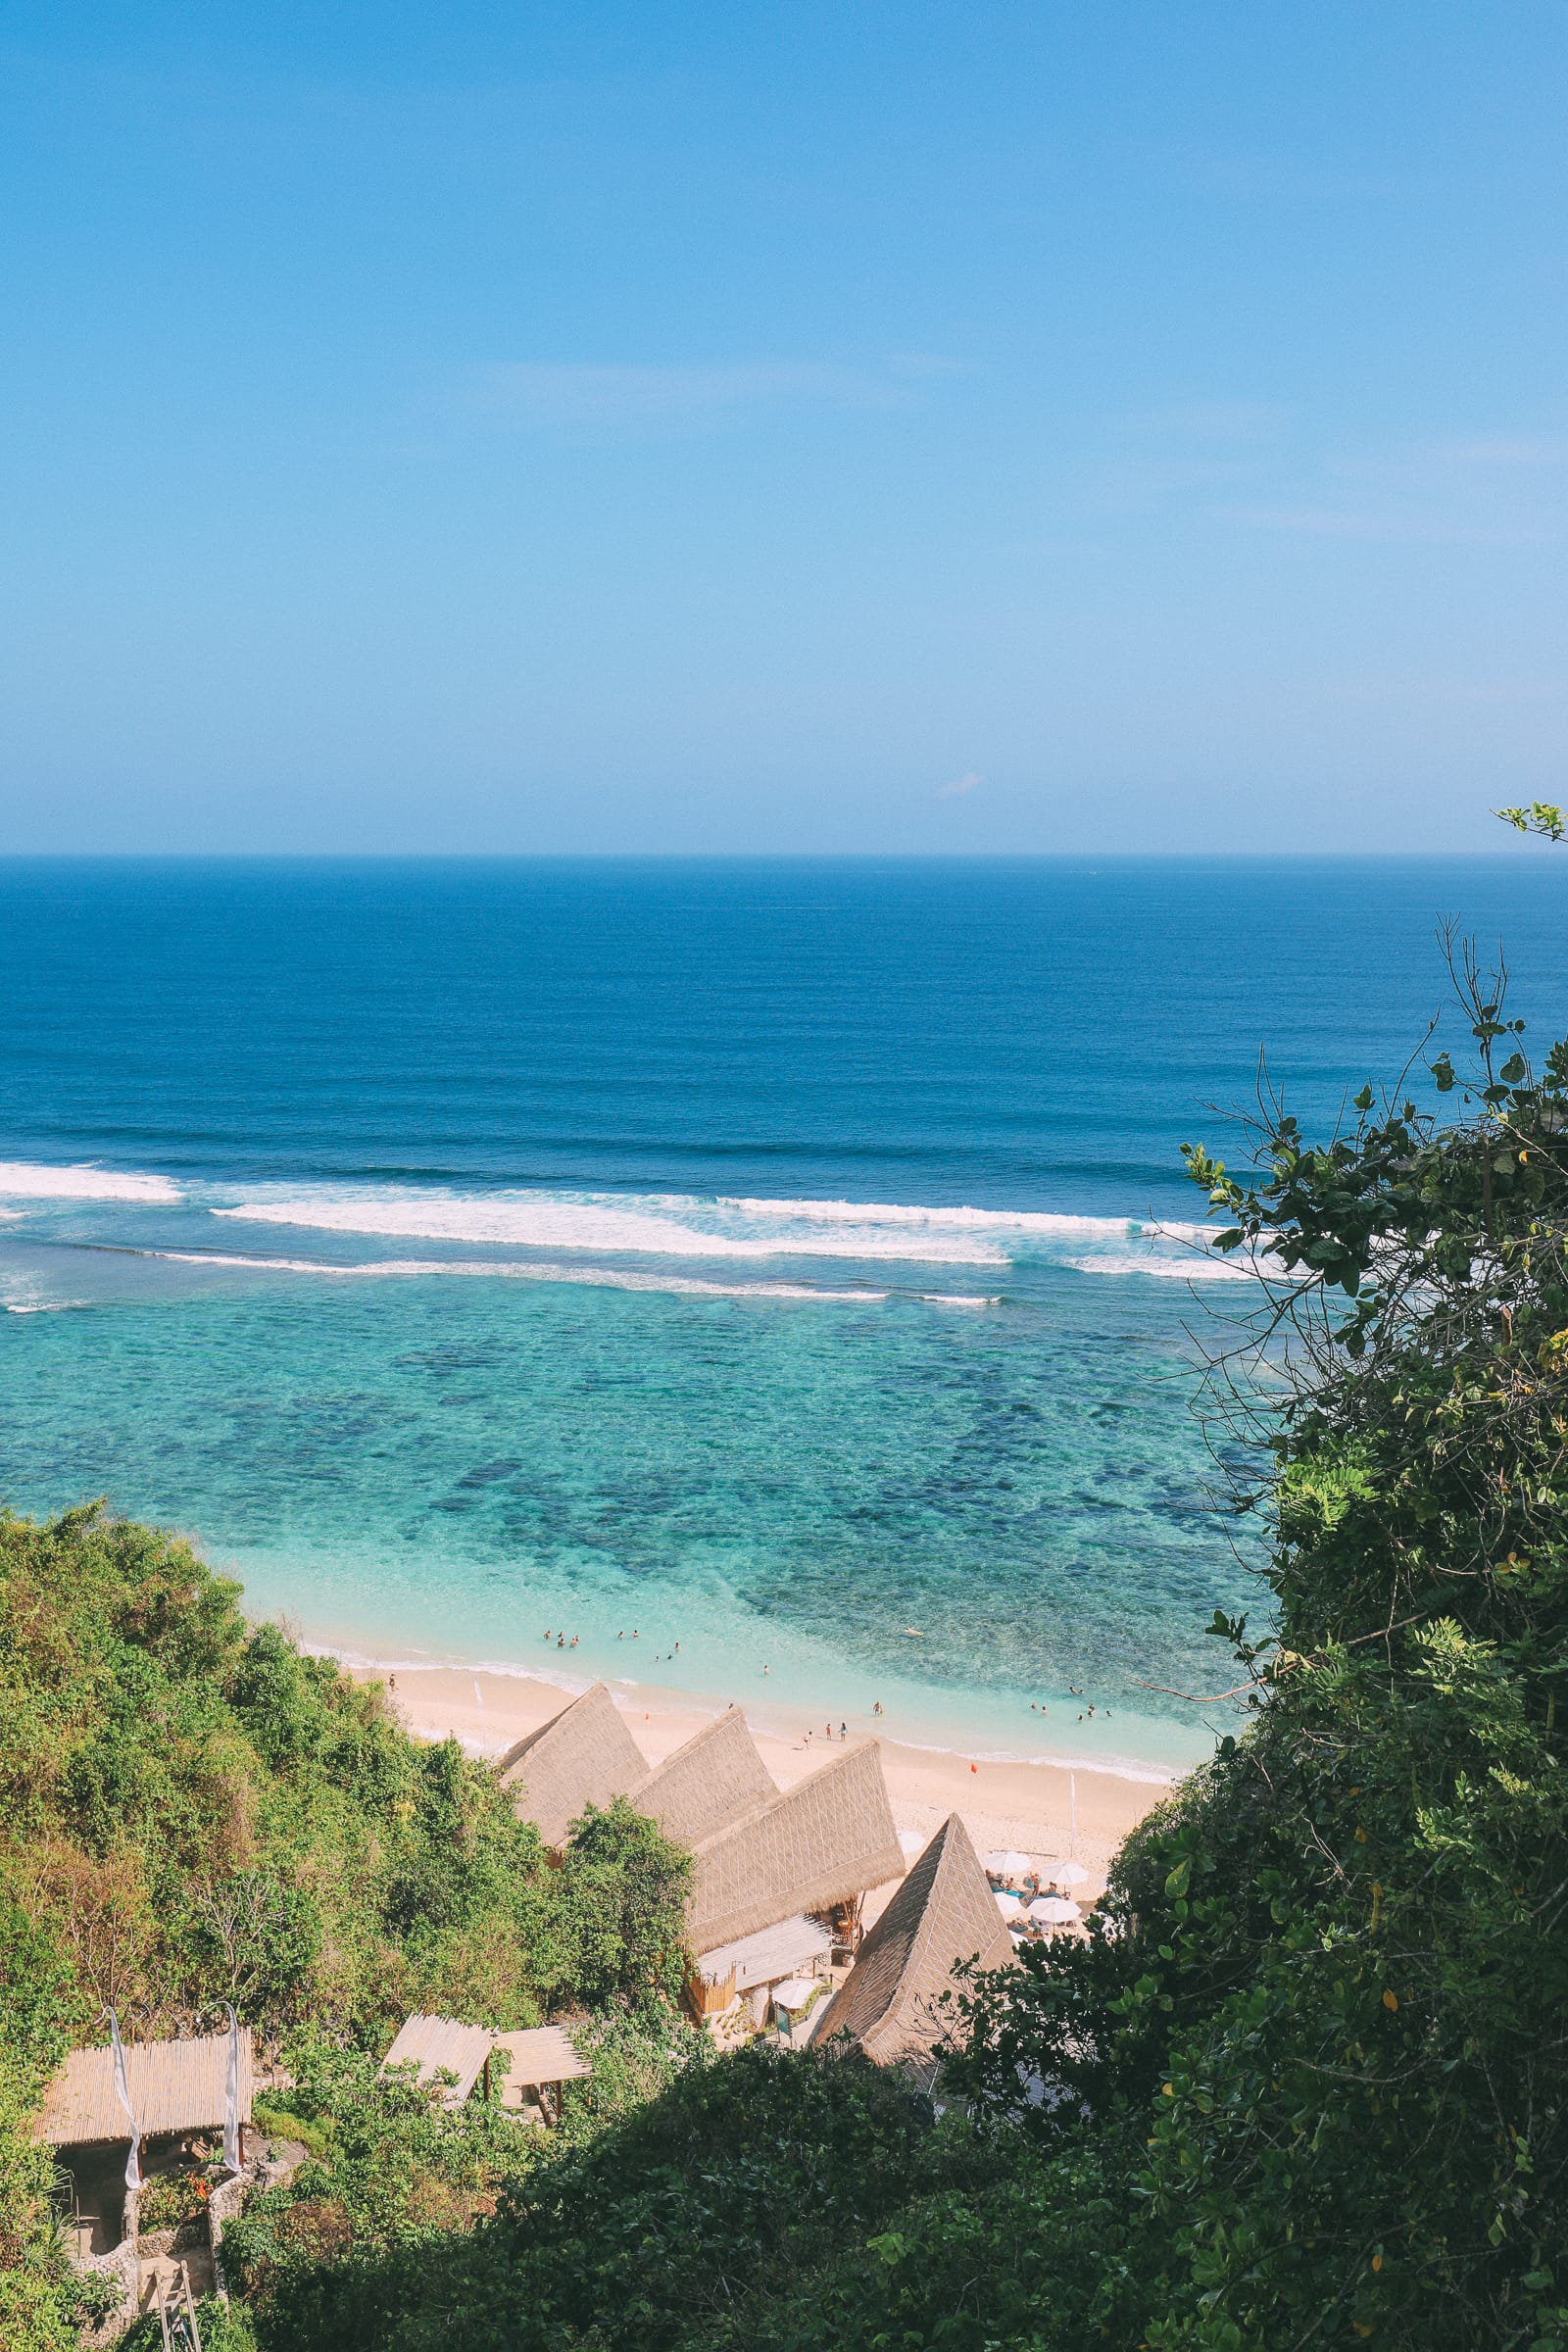 Sundays Beach Club - One Of The Best Beaches In Bali (1)